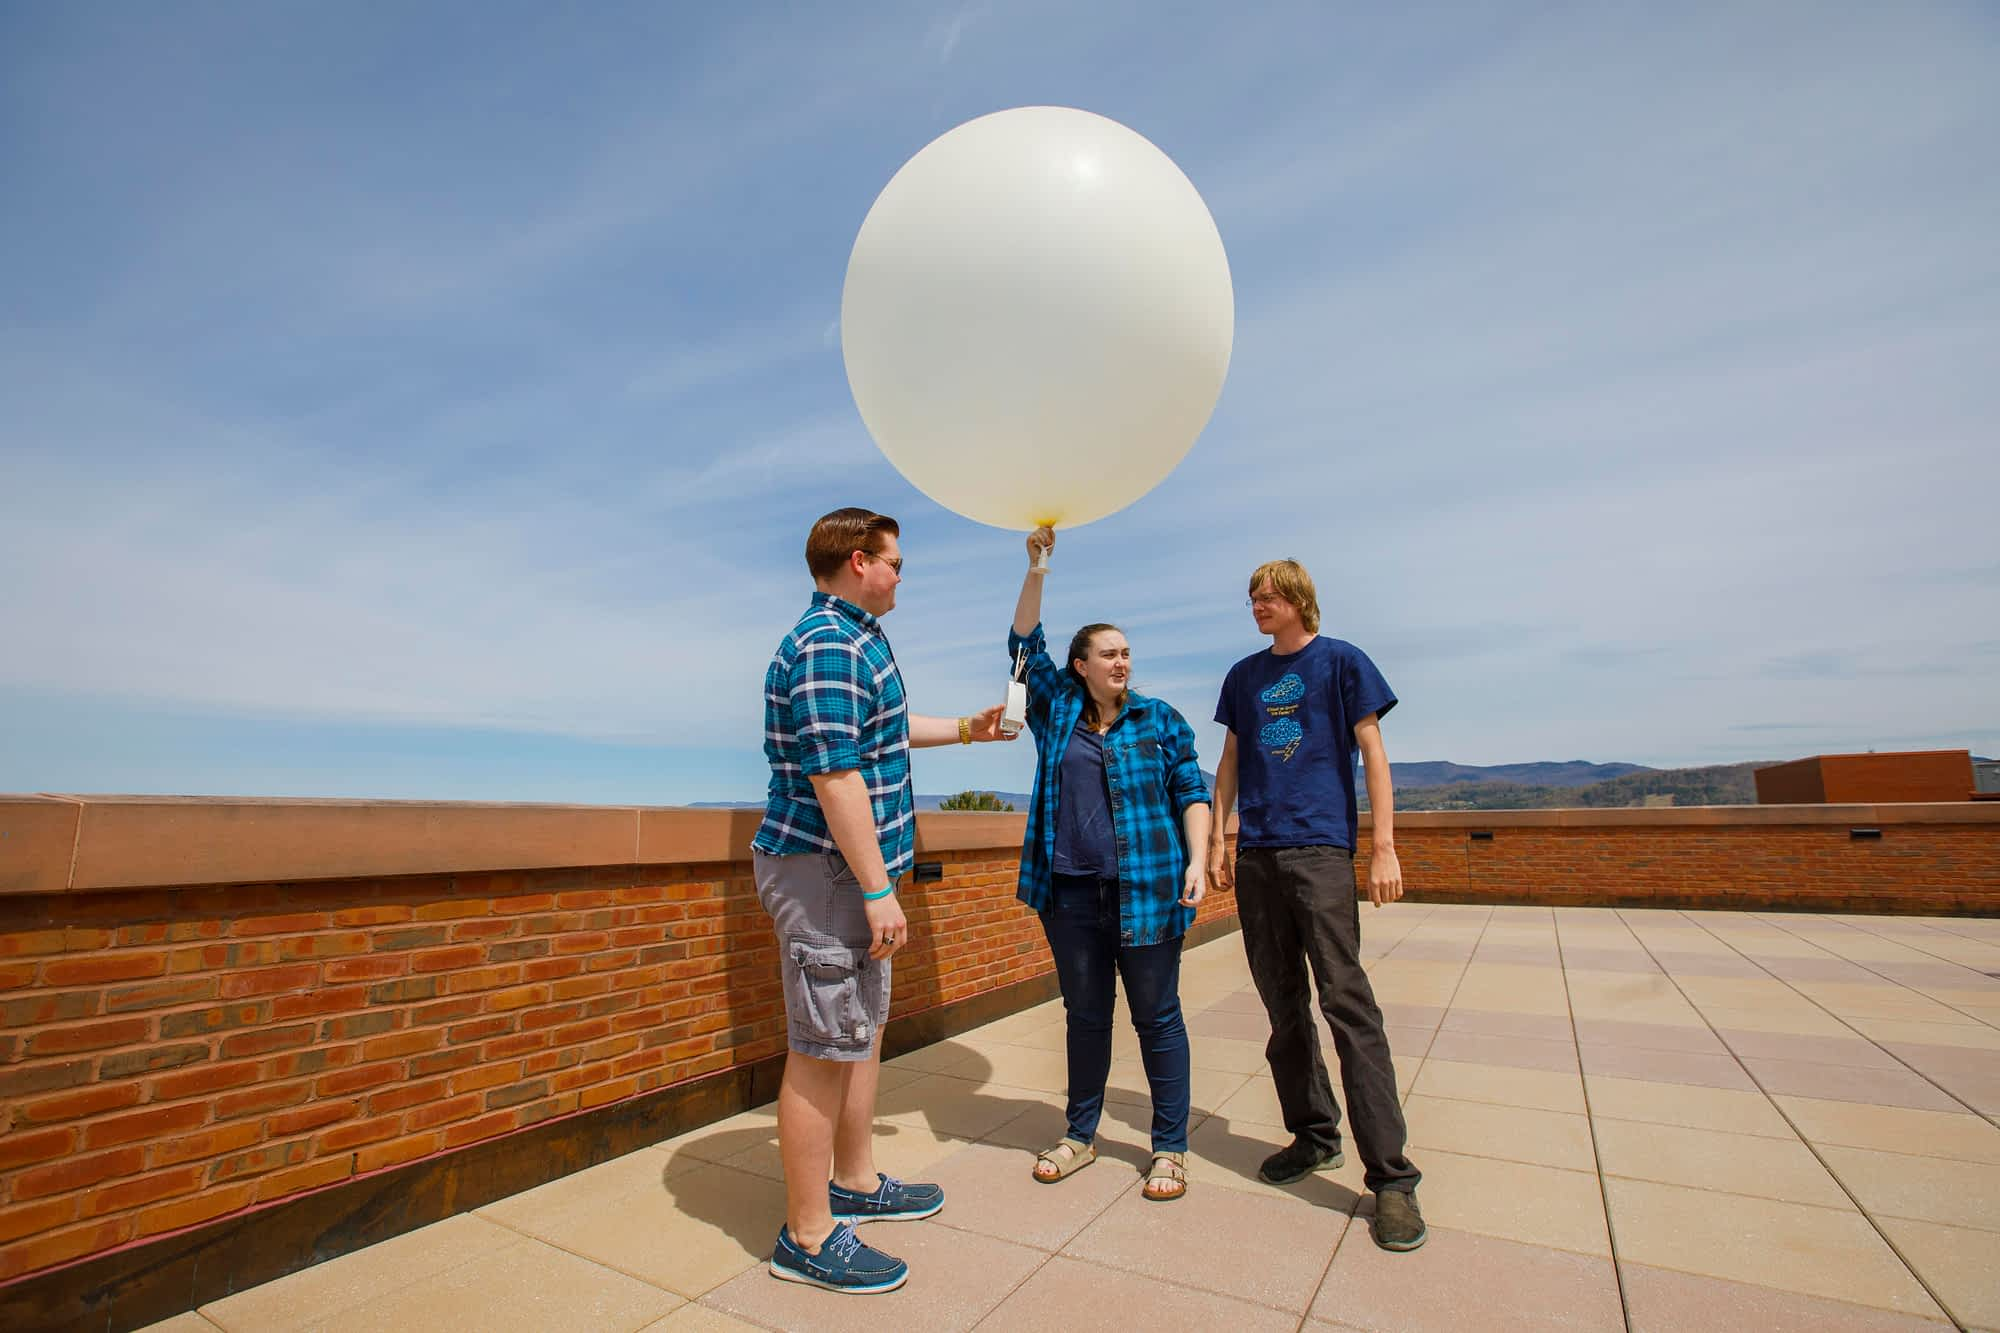 Launching weather balloons